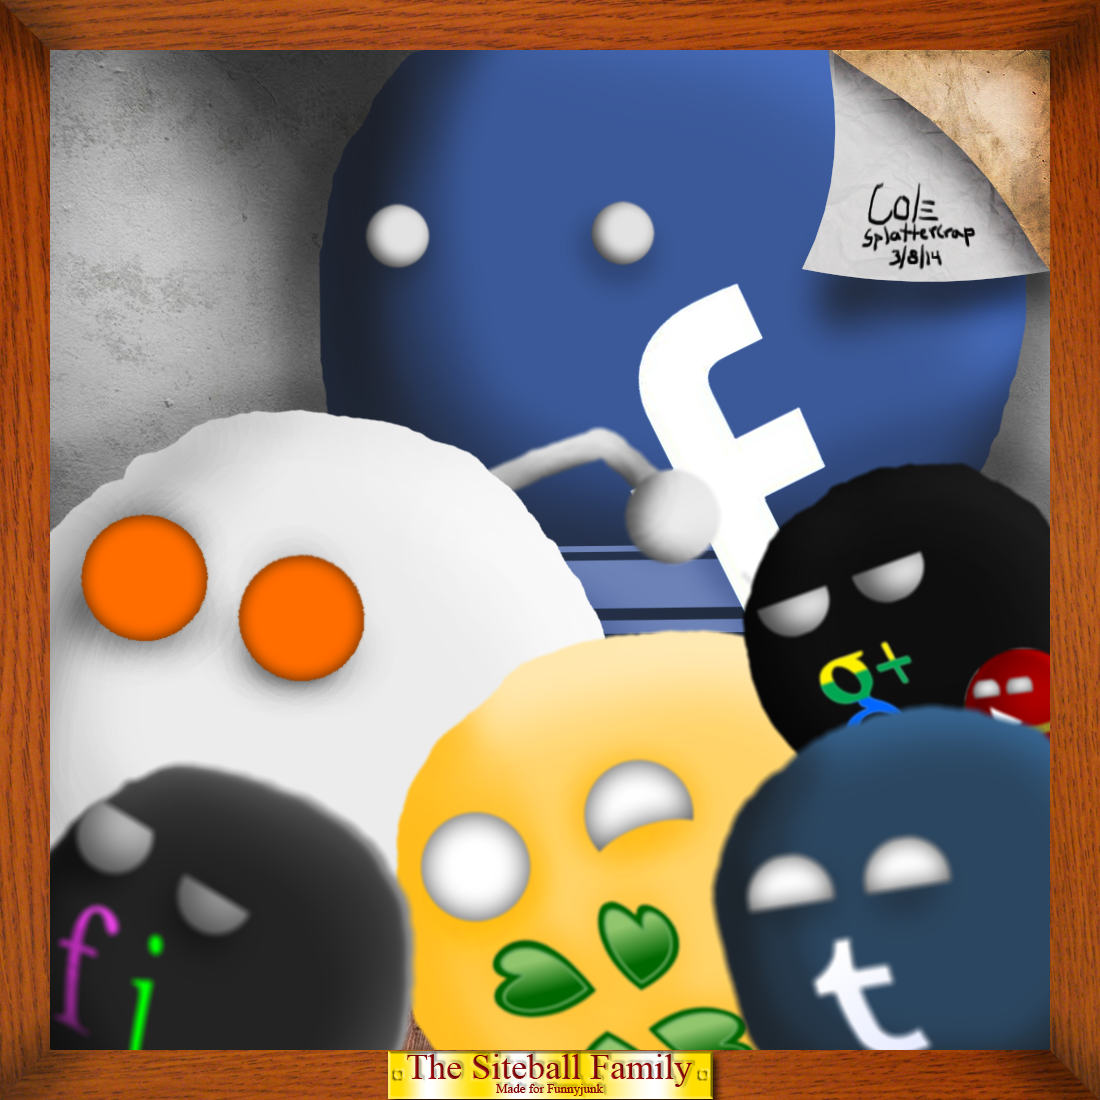 """The Siteball Family. This is some art work depicting a group of spherical creatures in a formation. These creatures seem to be depicting popular internet """""""